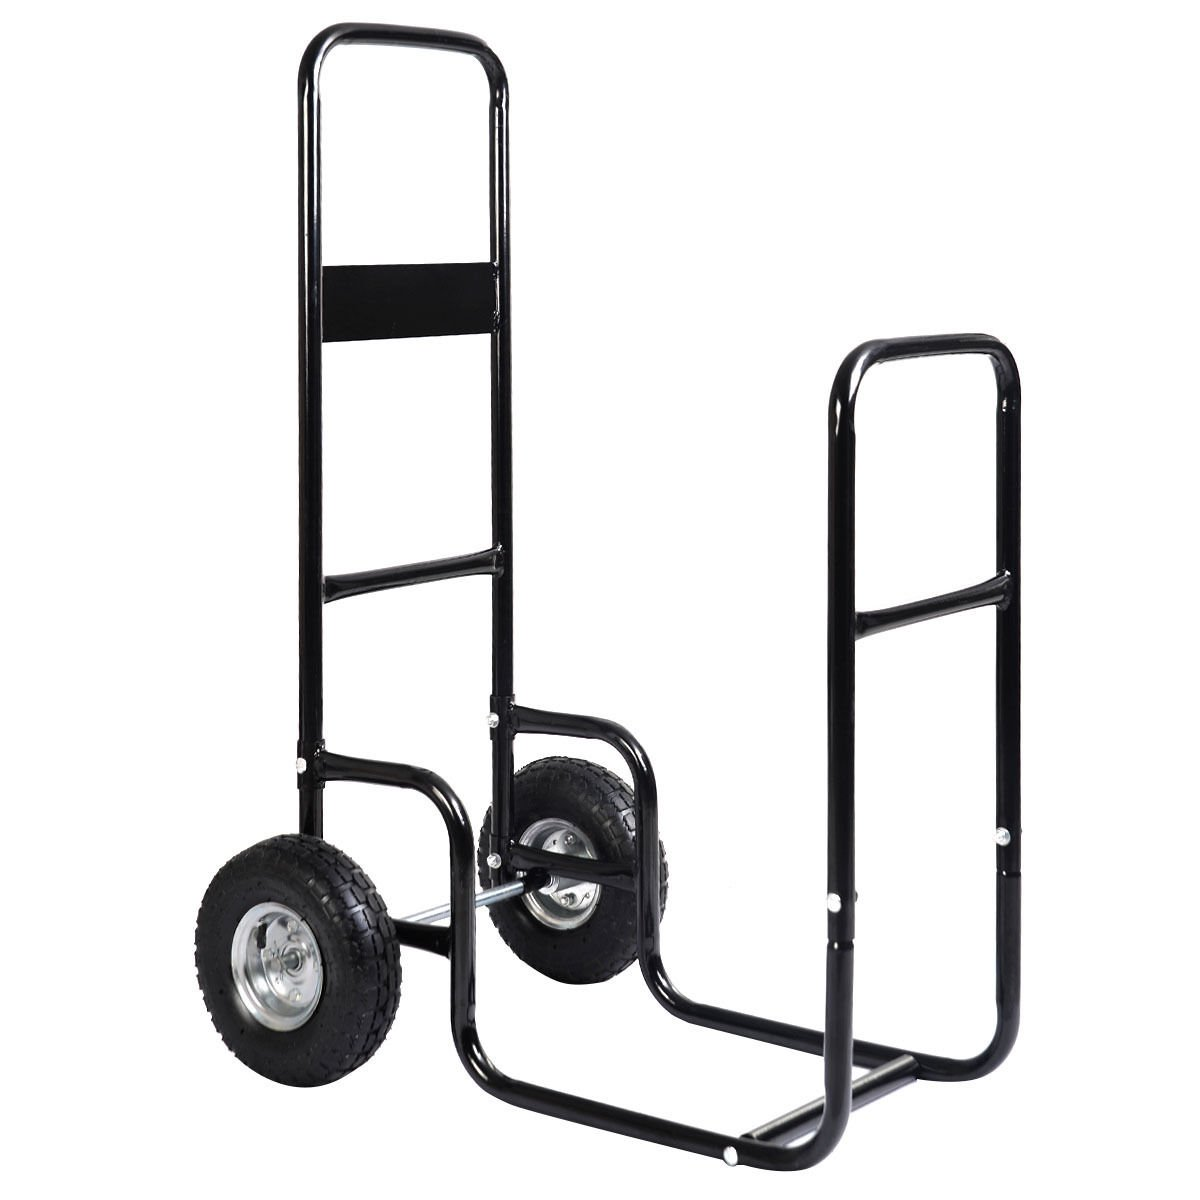 GHP 220Lbs Weight Limit Steel Firewood Mover Cart with All-Terrain Pneumatic Tires